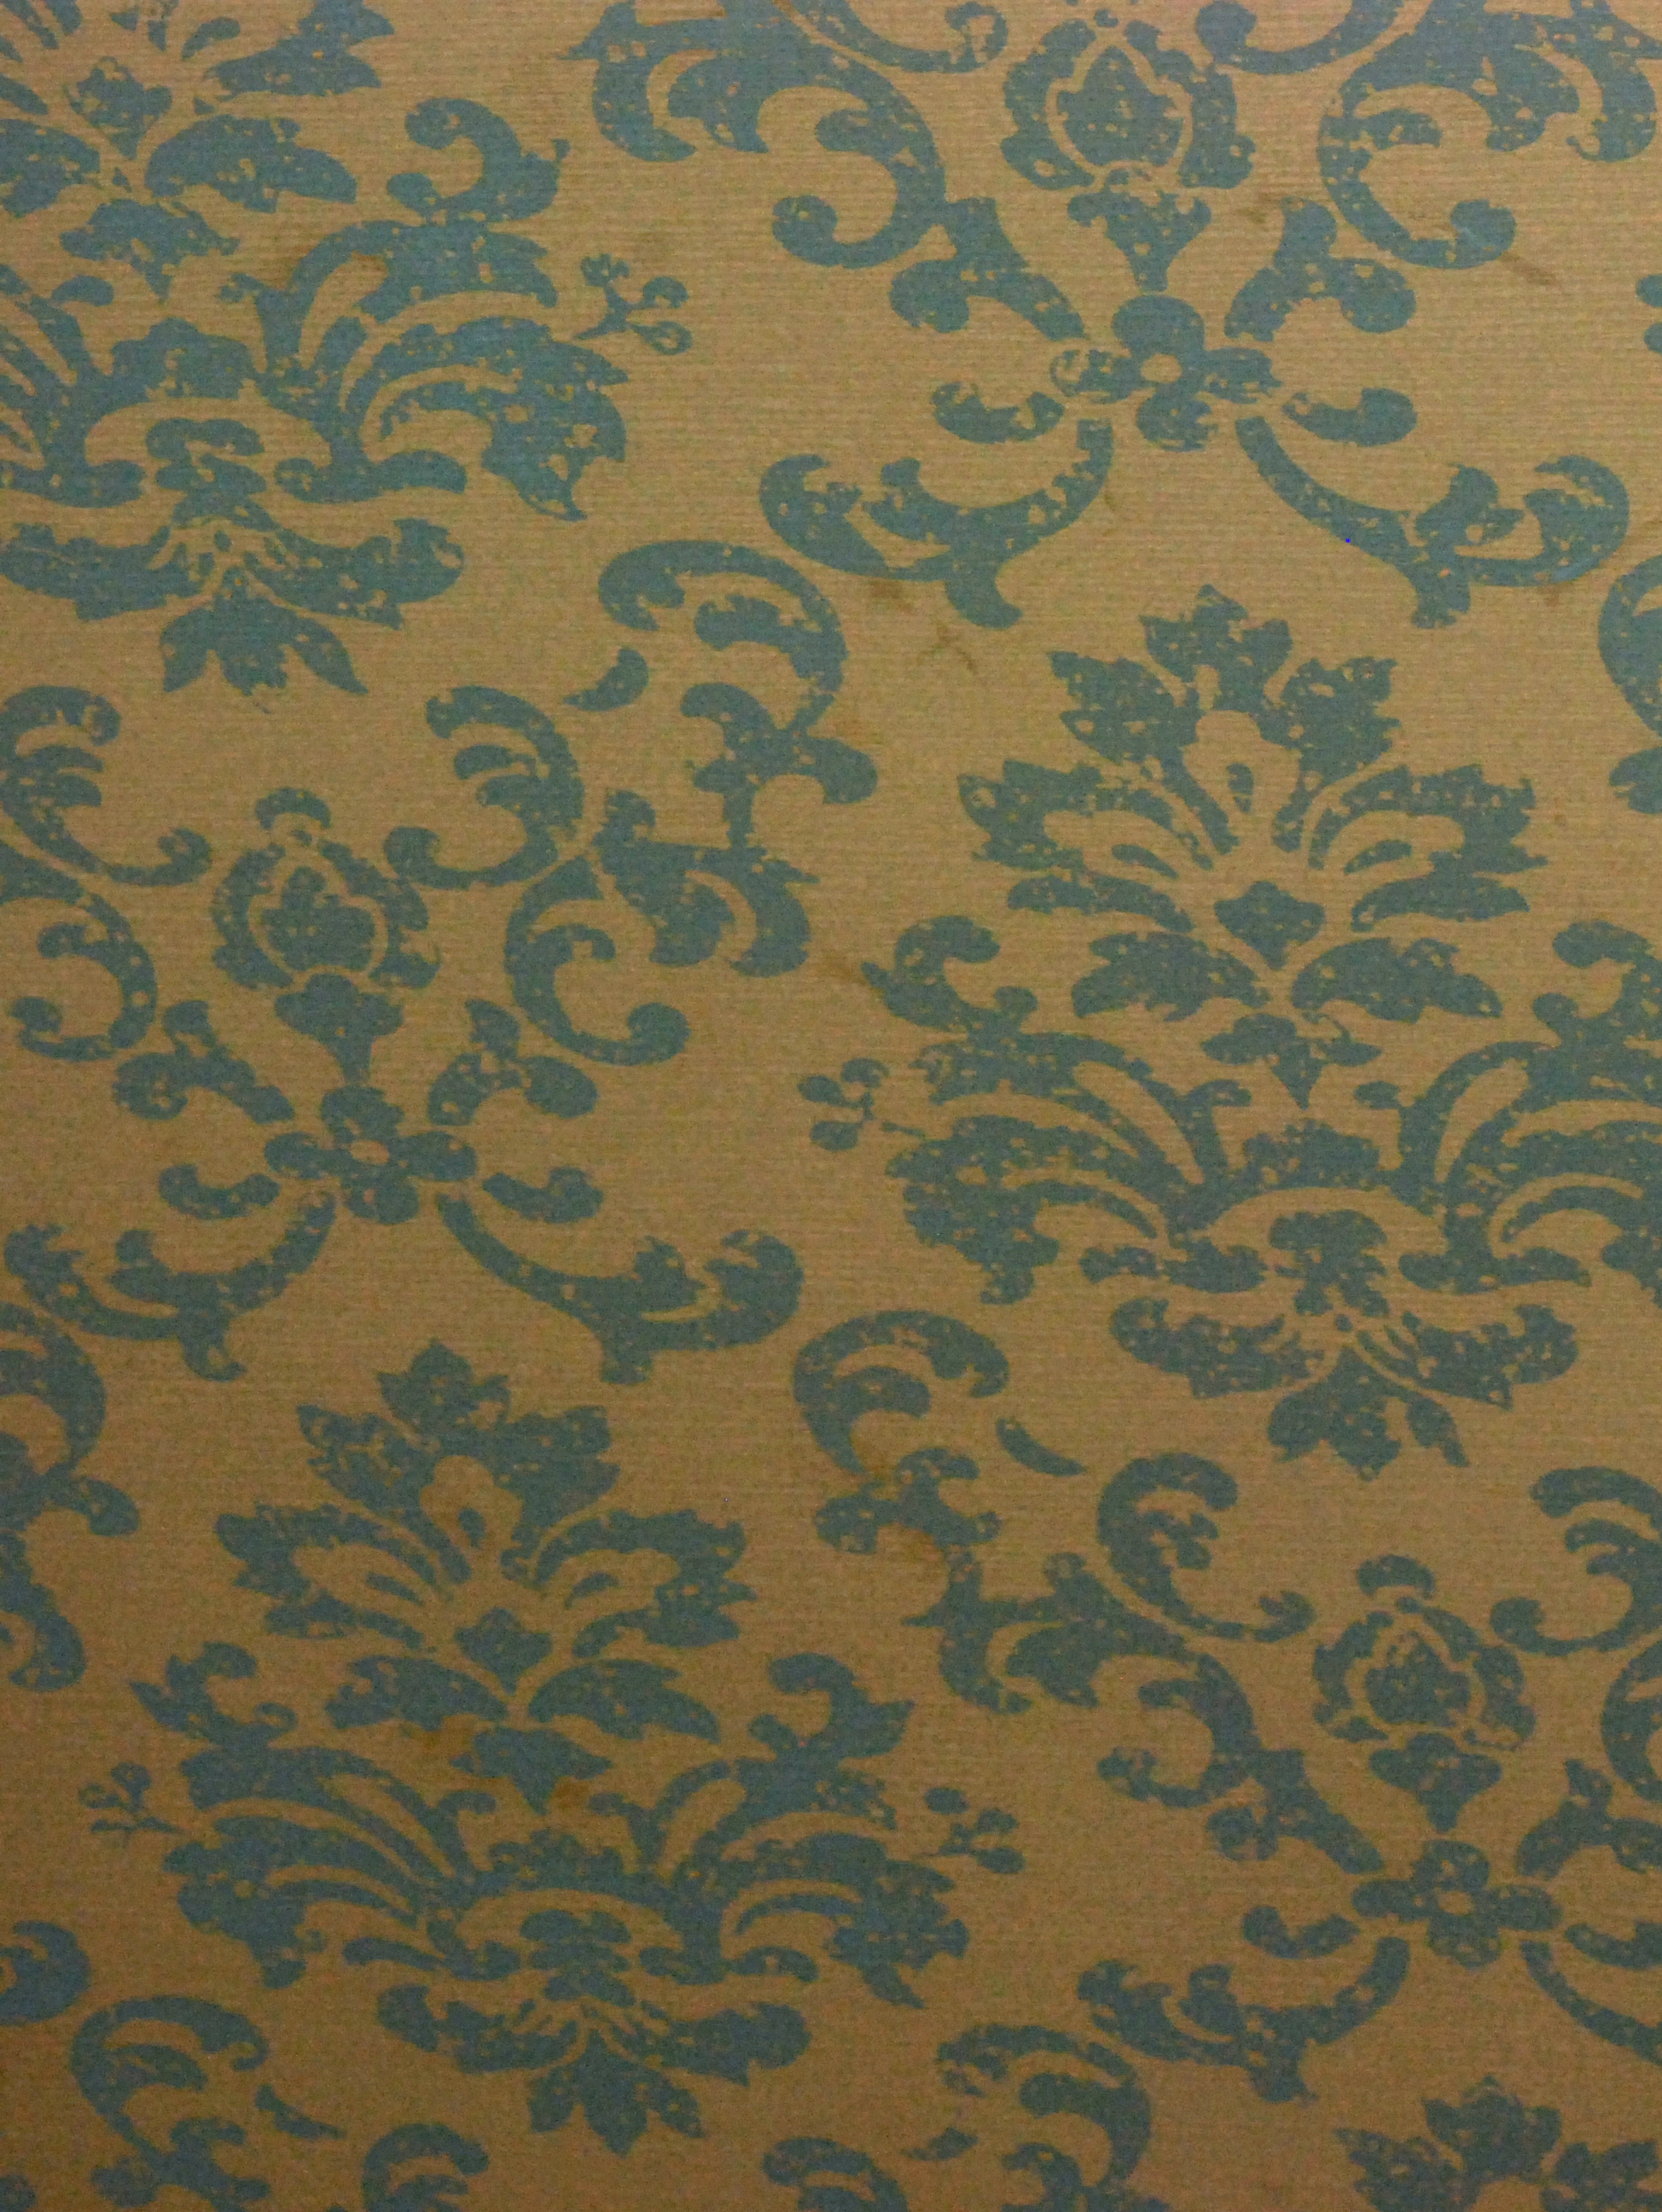 Wallpaper Maza Antique Wallpaper Patterns